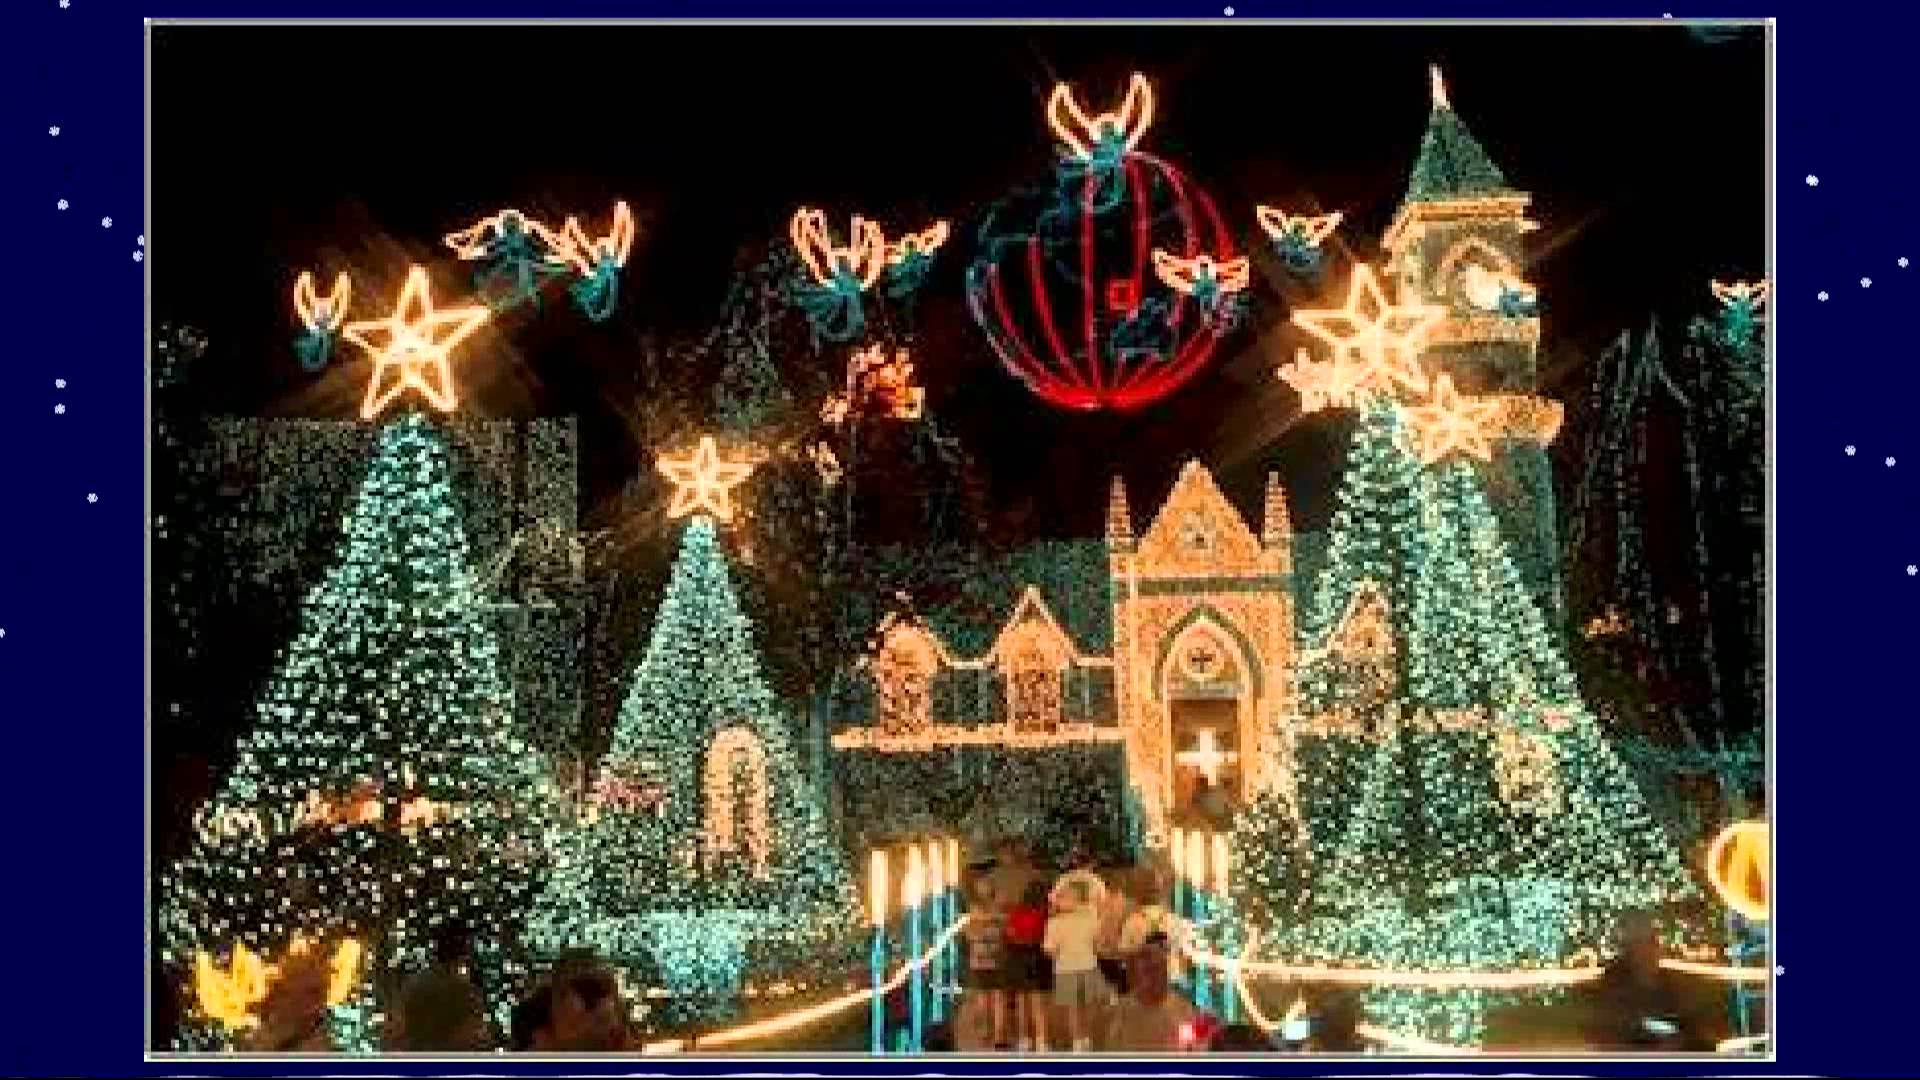 Final Year for the Osborne Family Lights